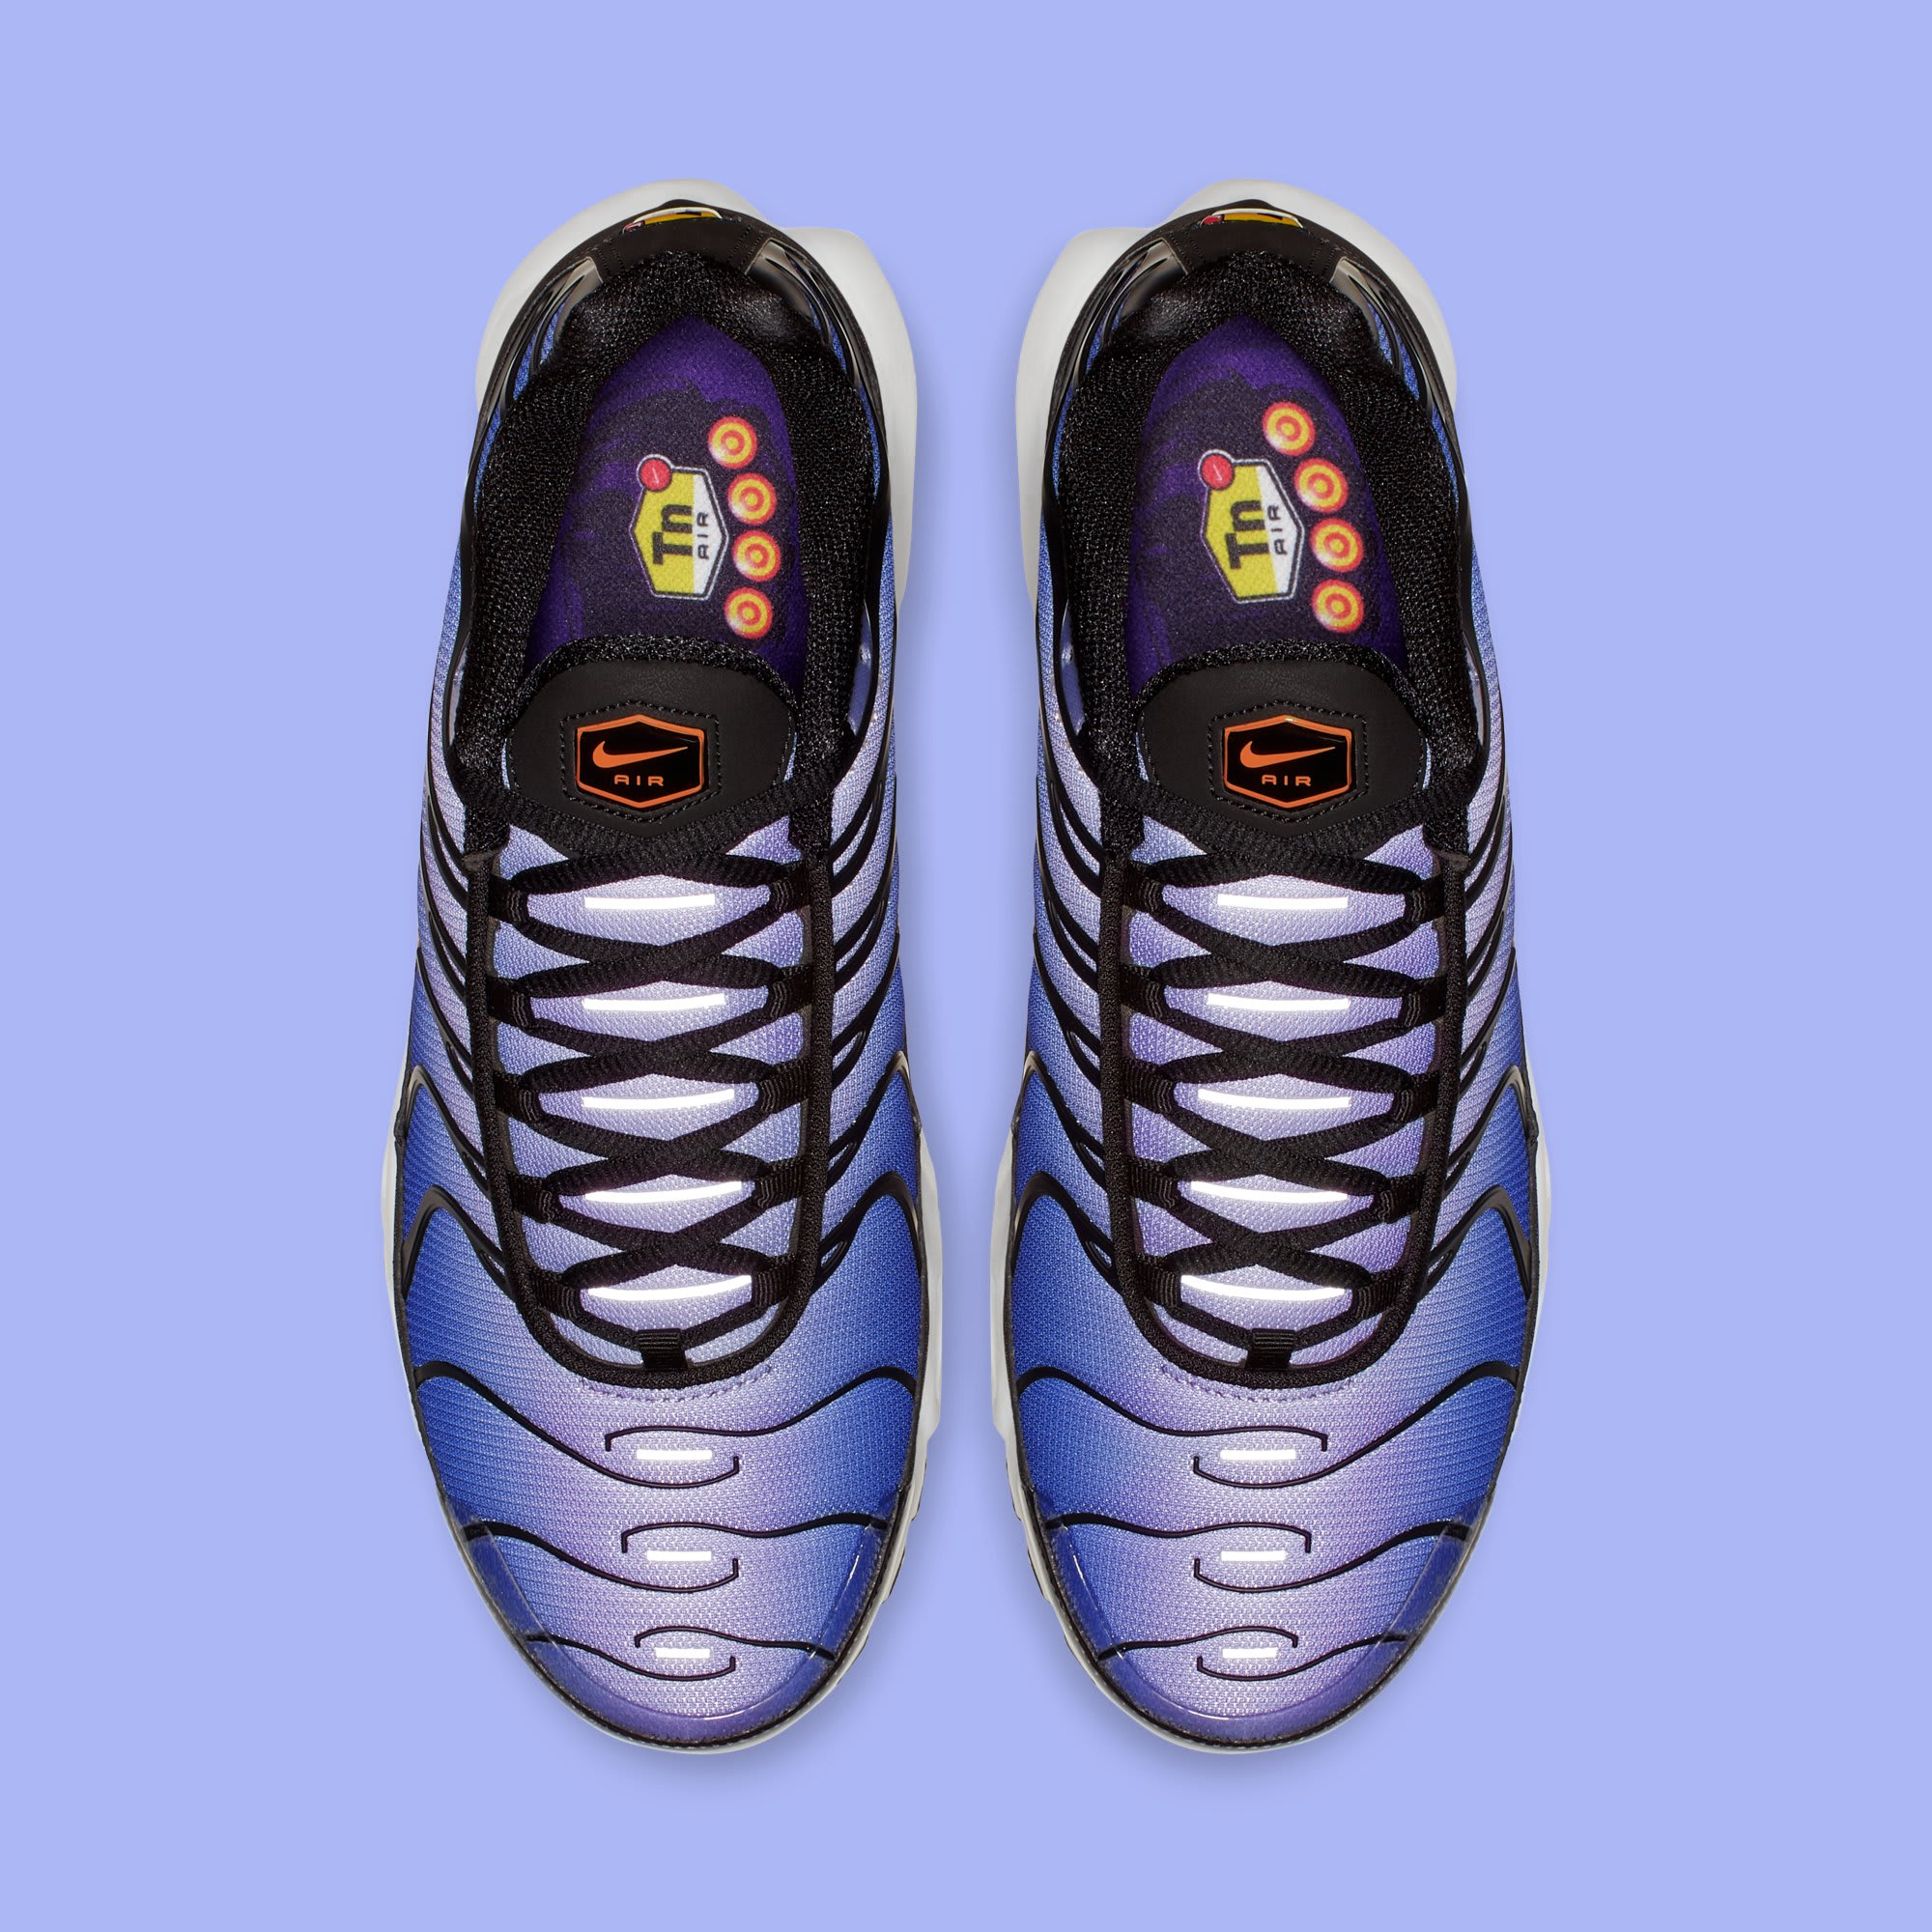 Nike Air Max Plus 'Black/Total Orange-Voltage Purple' BQ4629-002 (Top)